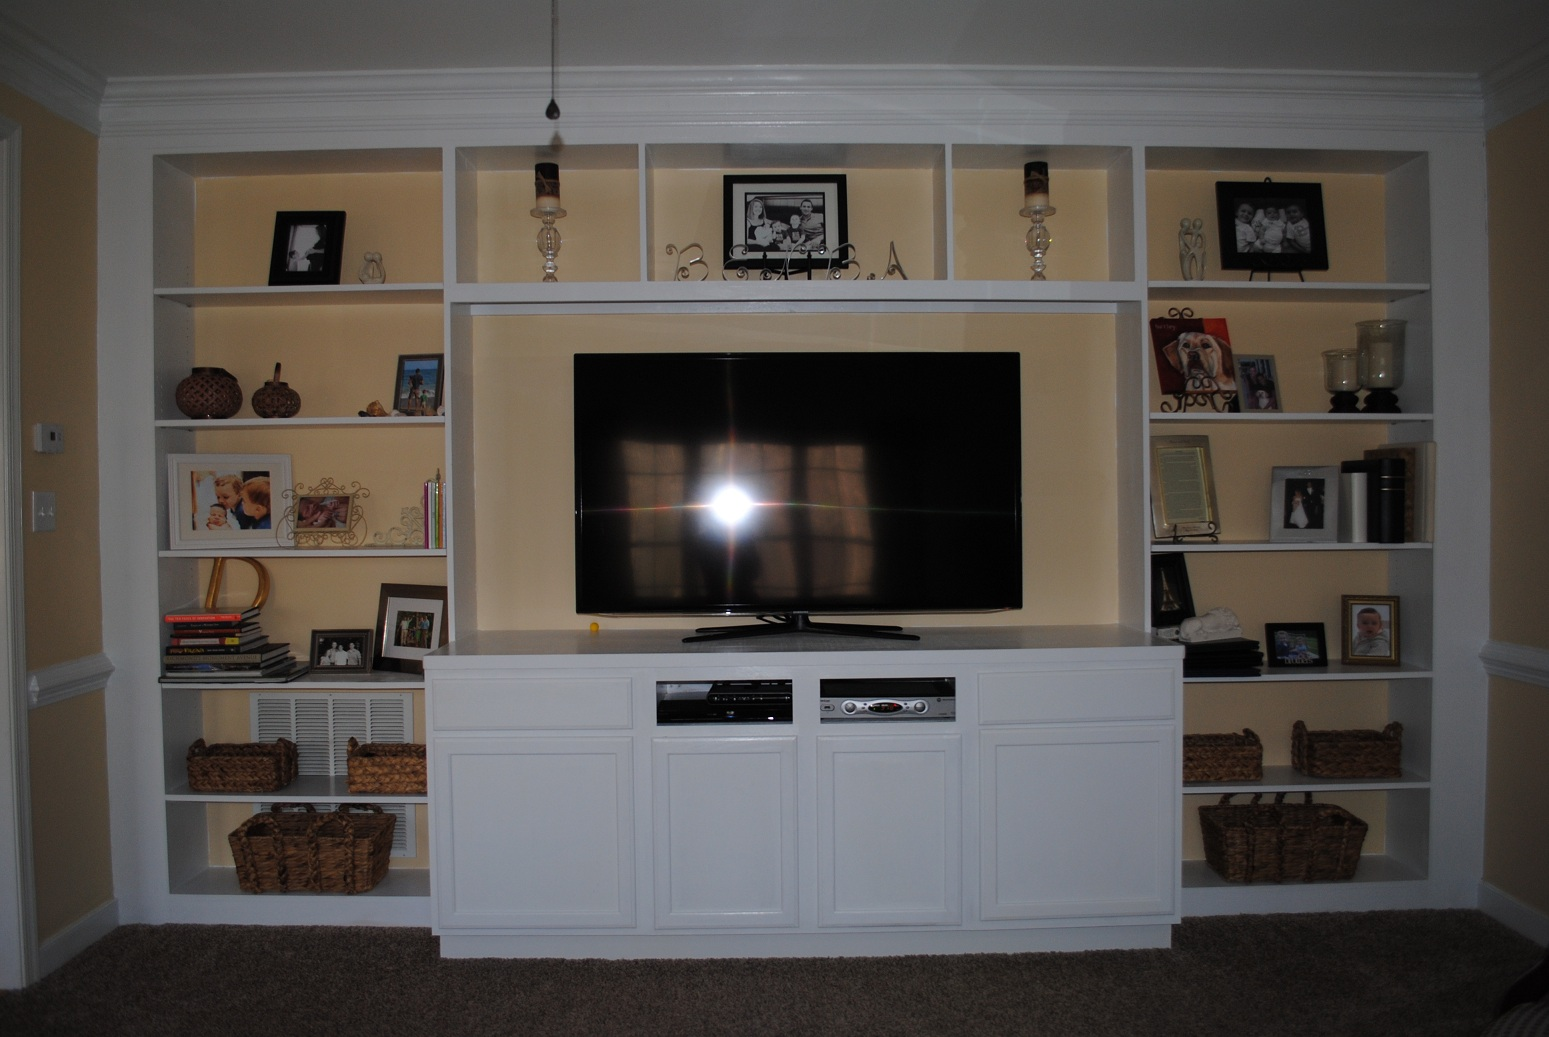 ikea kitchen ideas 2013 html with Looking Someone Build Entertainment Center 69138 on  likewise 1566554517 together with Hidden Kitchen Functional Feature Modern Design Logica System Kitchen as well Schottis Custom Shades additionally Hackers Hep Help In Identifying Couch.